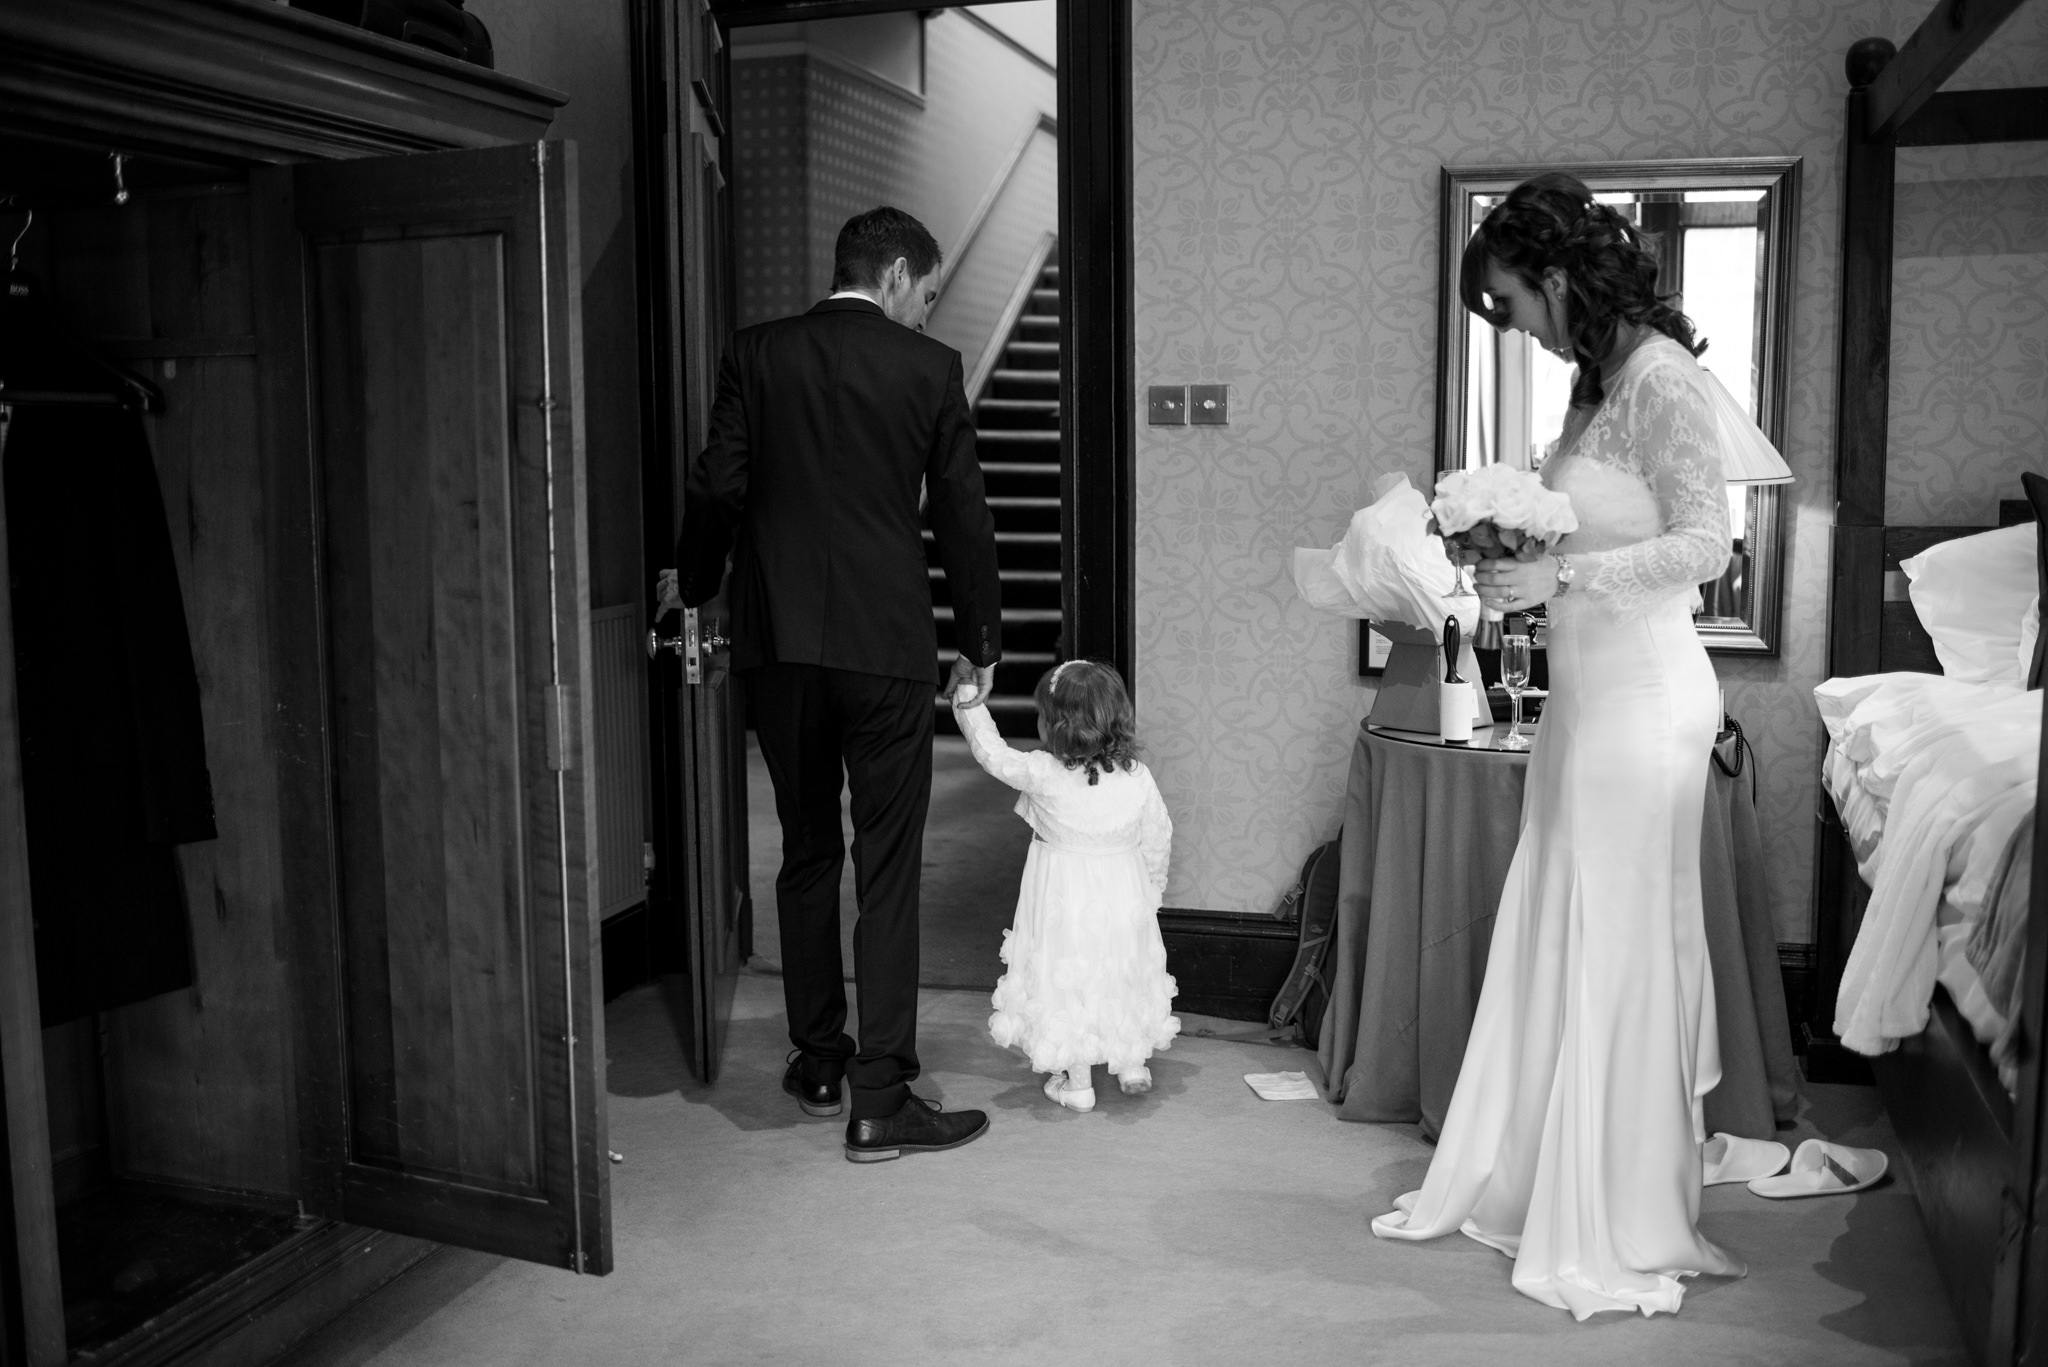 Paul and Claire's wedding at One Devonshire Gardens - © Julie Broadfoot - www.photographybyjuliebee.co.uk